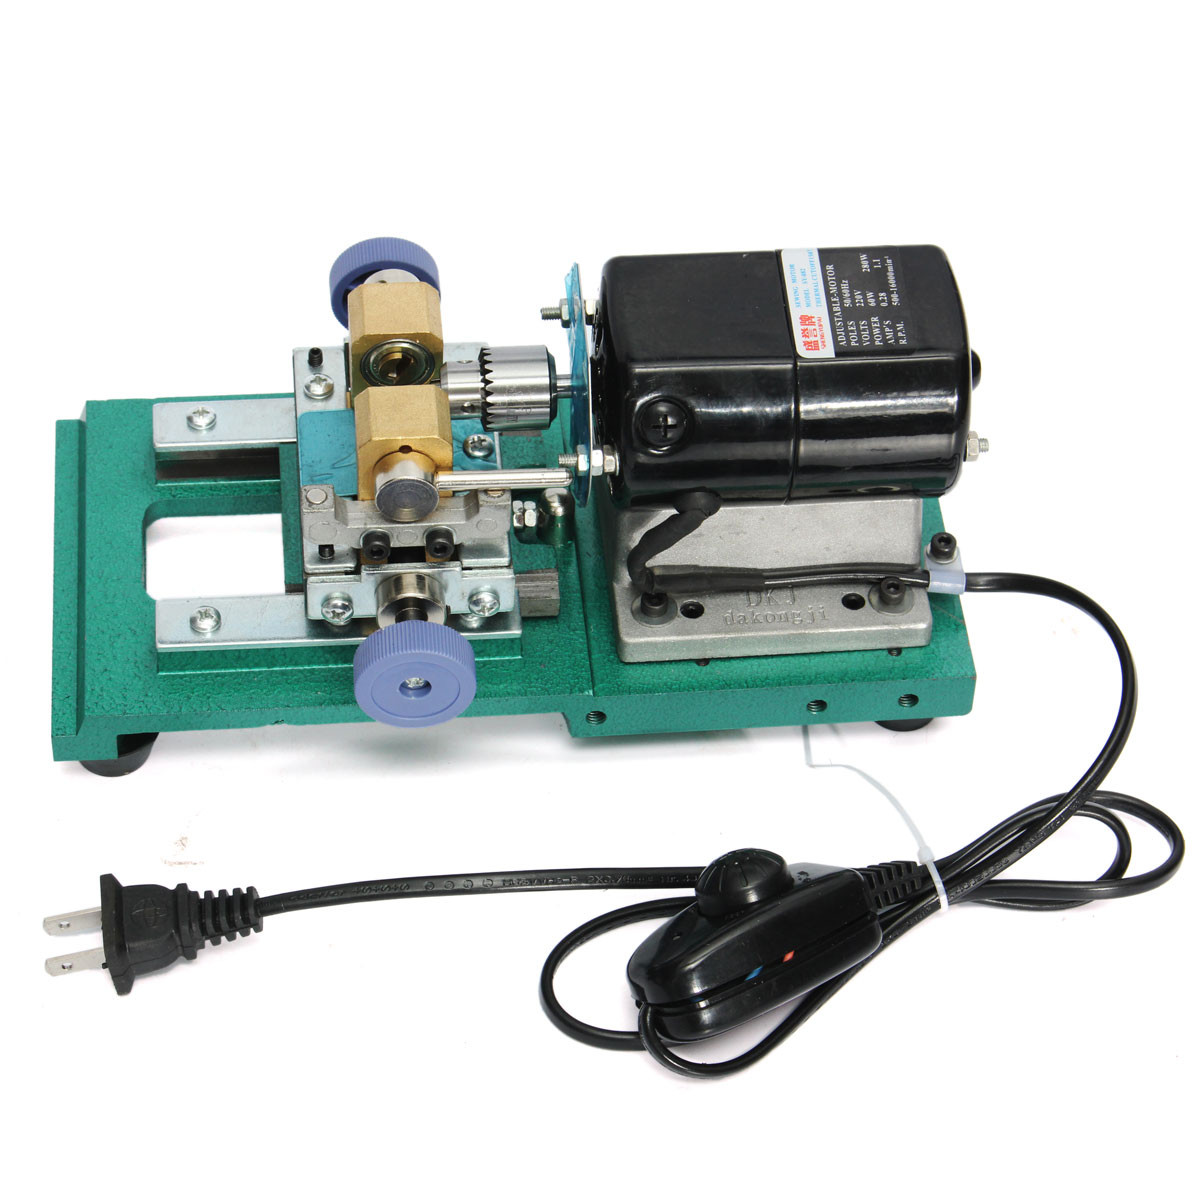 Beads drilling machine